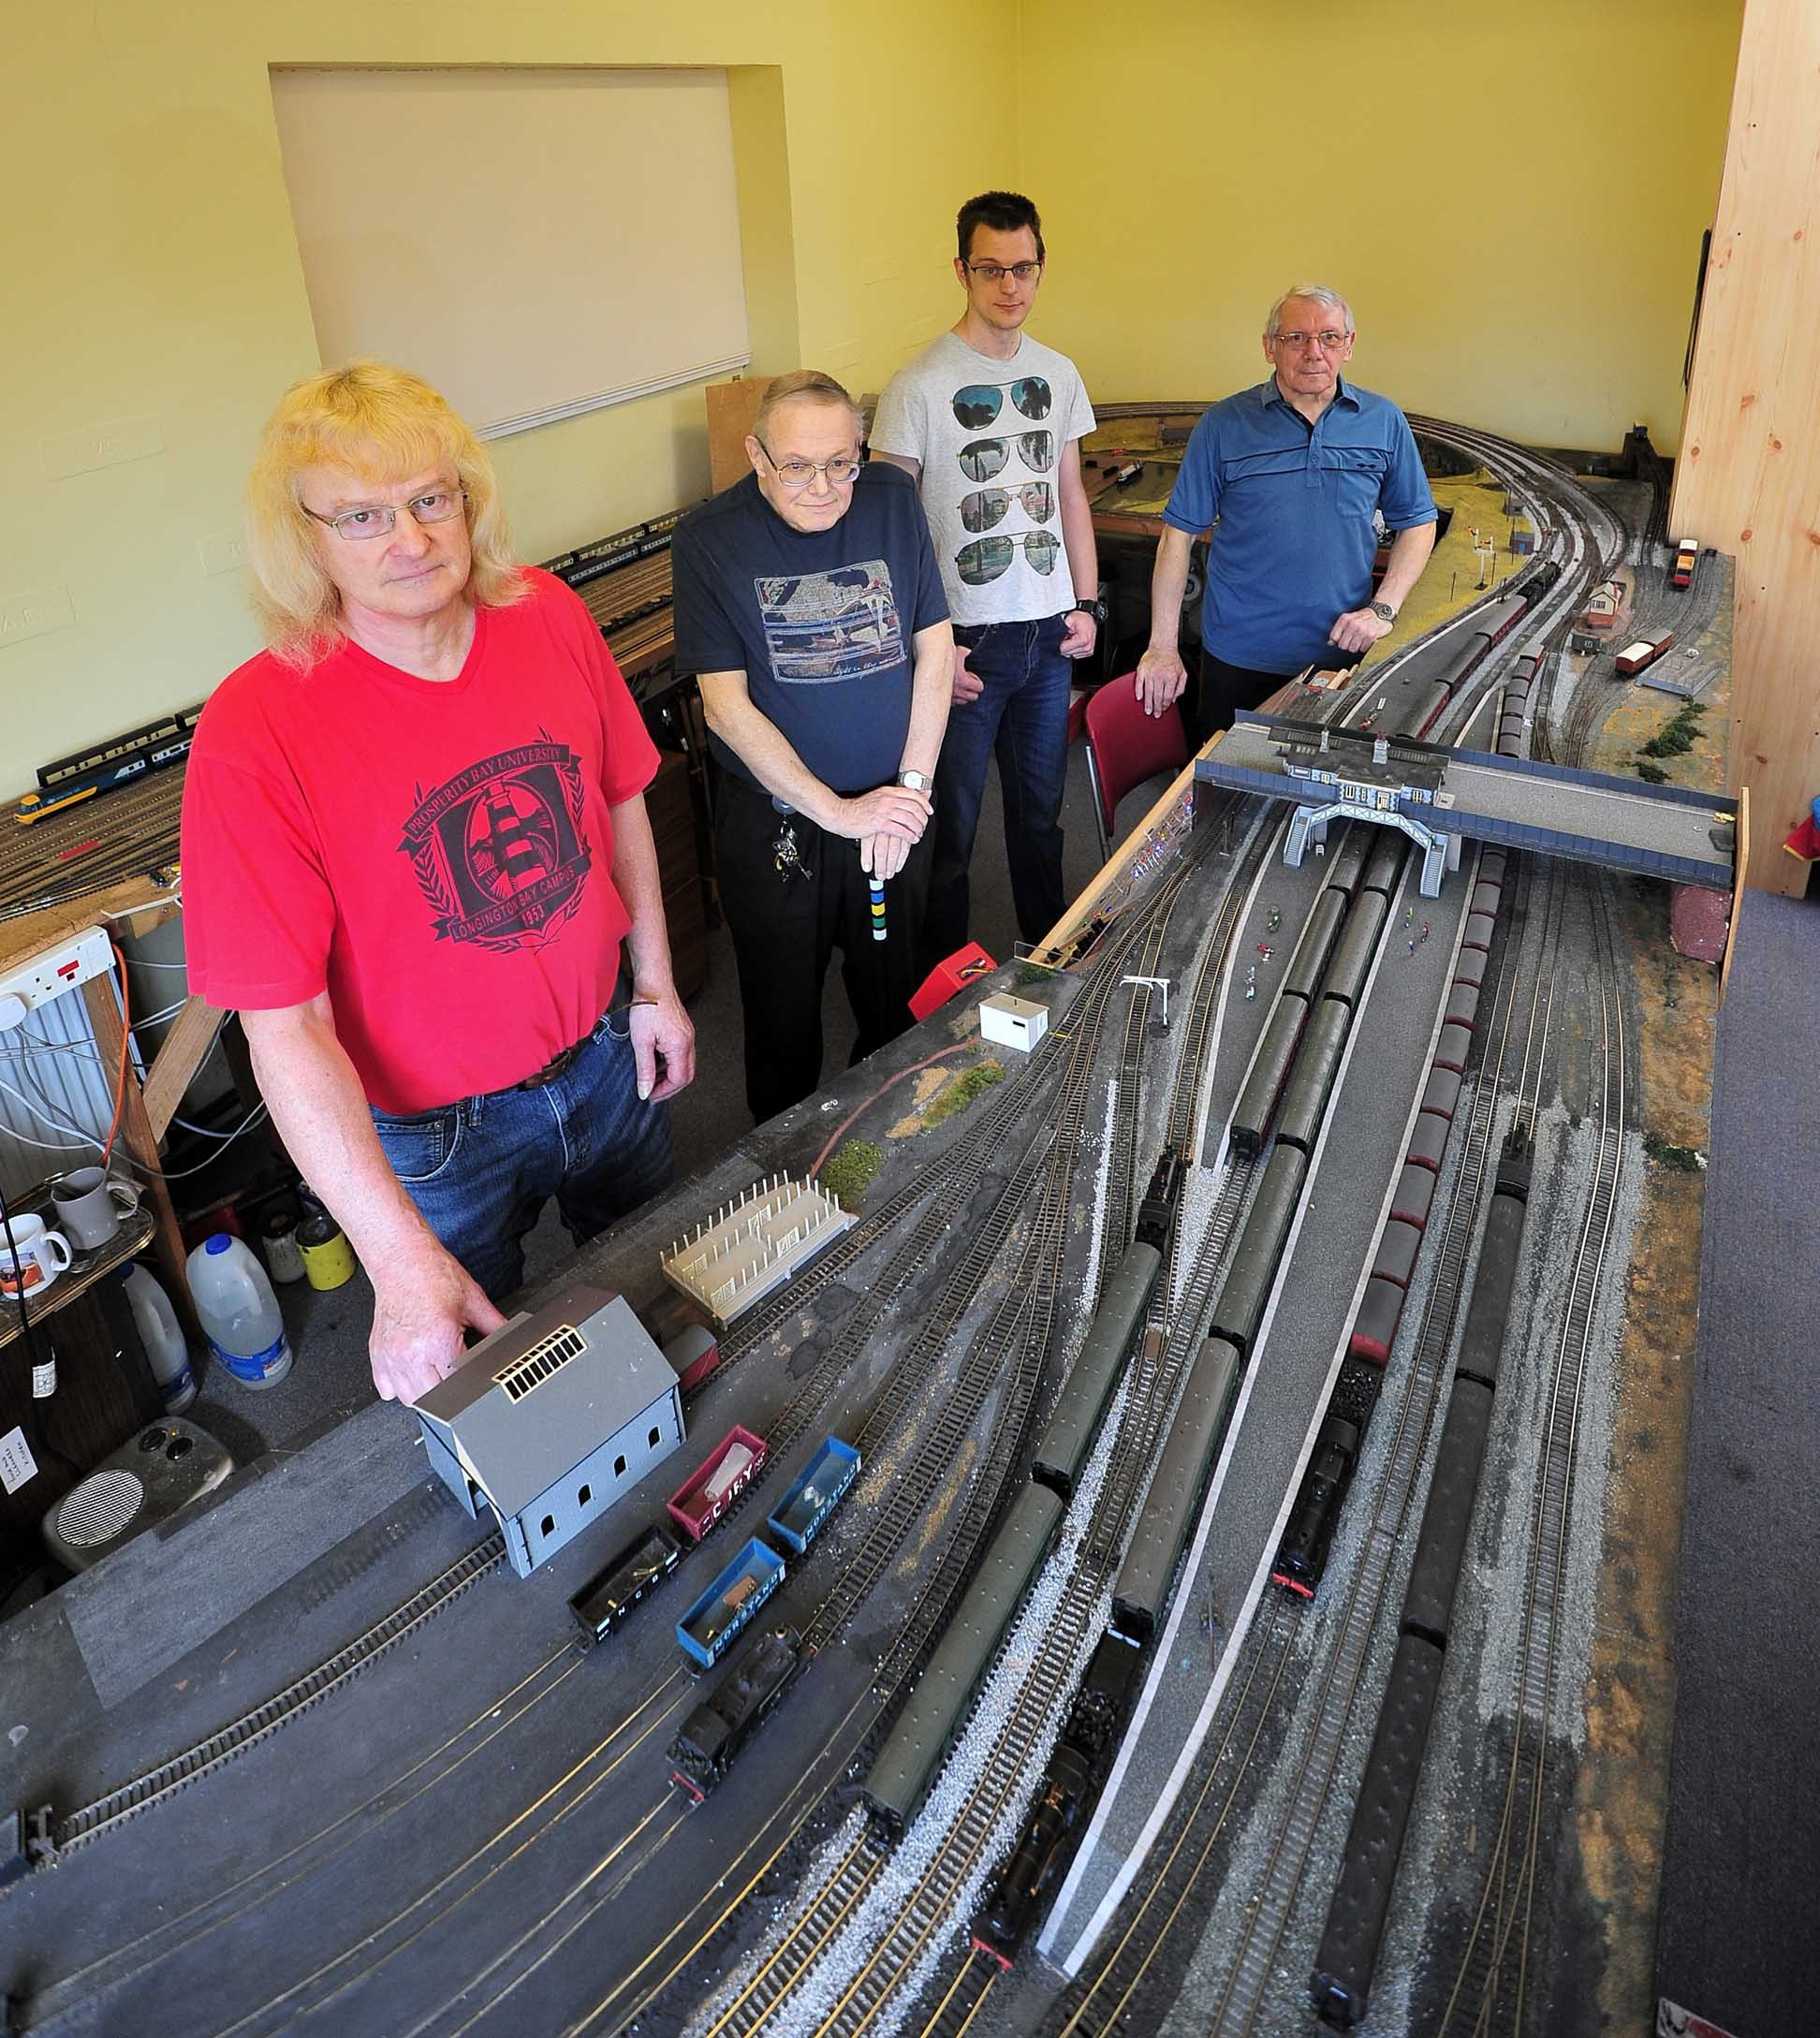 Members of the Worcester Model Railway Club, who have been told they must move from their current base at the Rainbow Hill Centre, Astwood Road, Worcester. David Lawrence, Dave Pitt, Phil Bruce, Barry Reynolds. Pic Jonathan Barry 20.4.18.